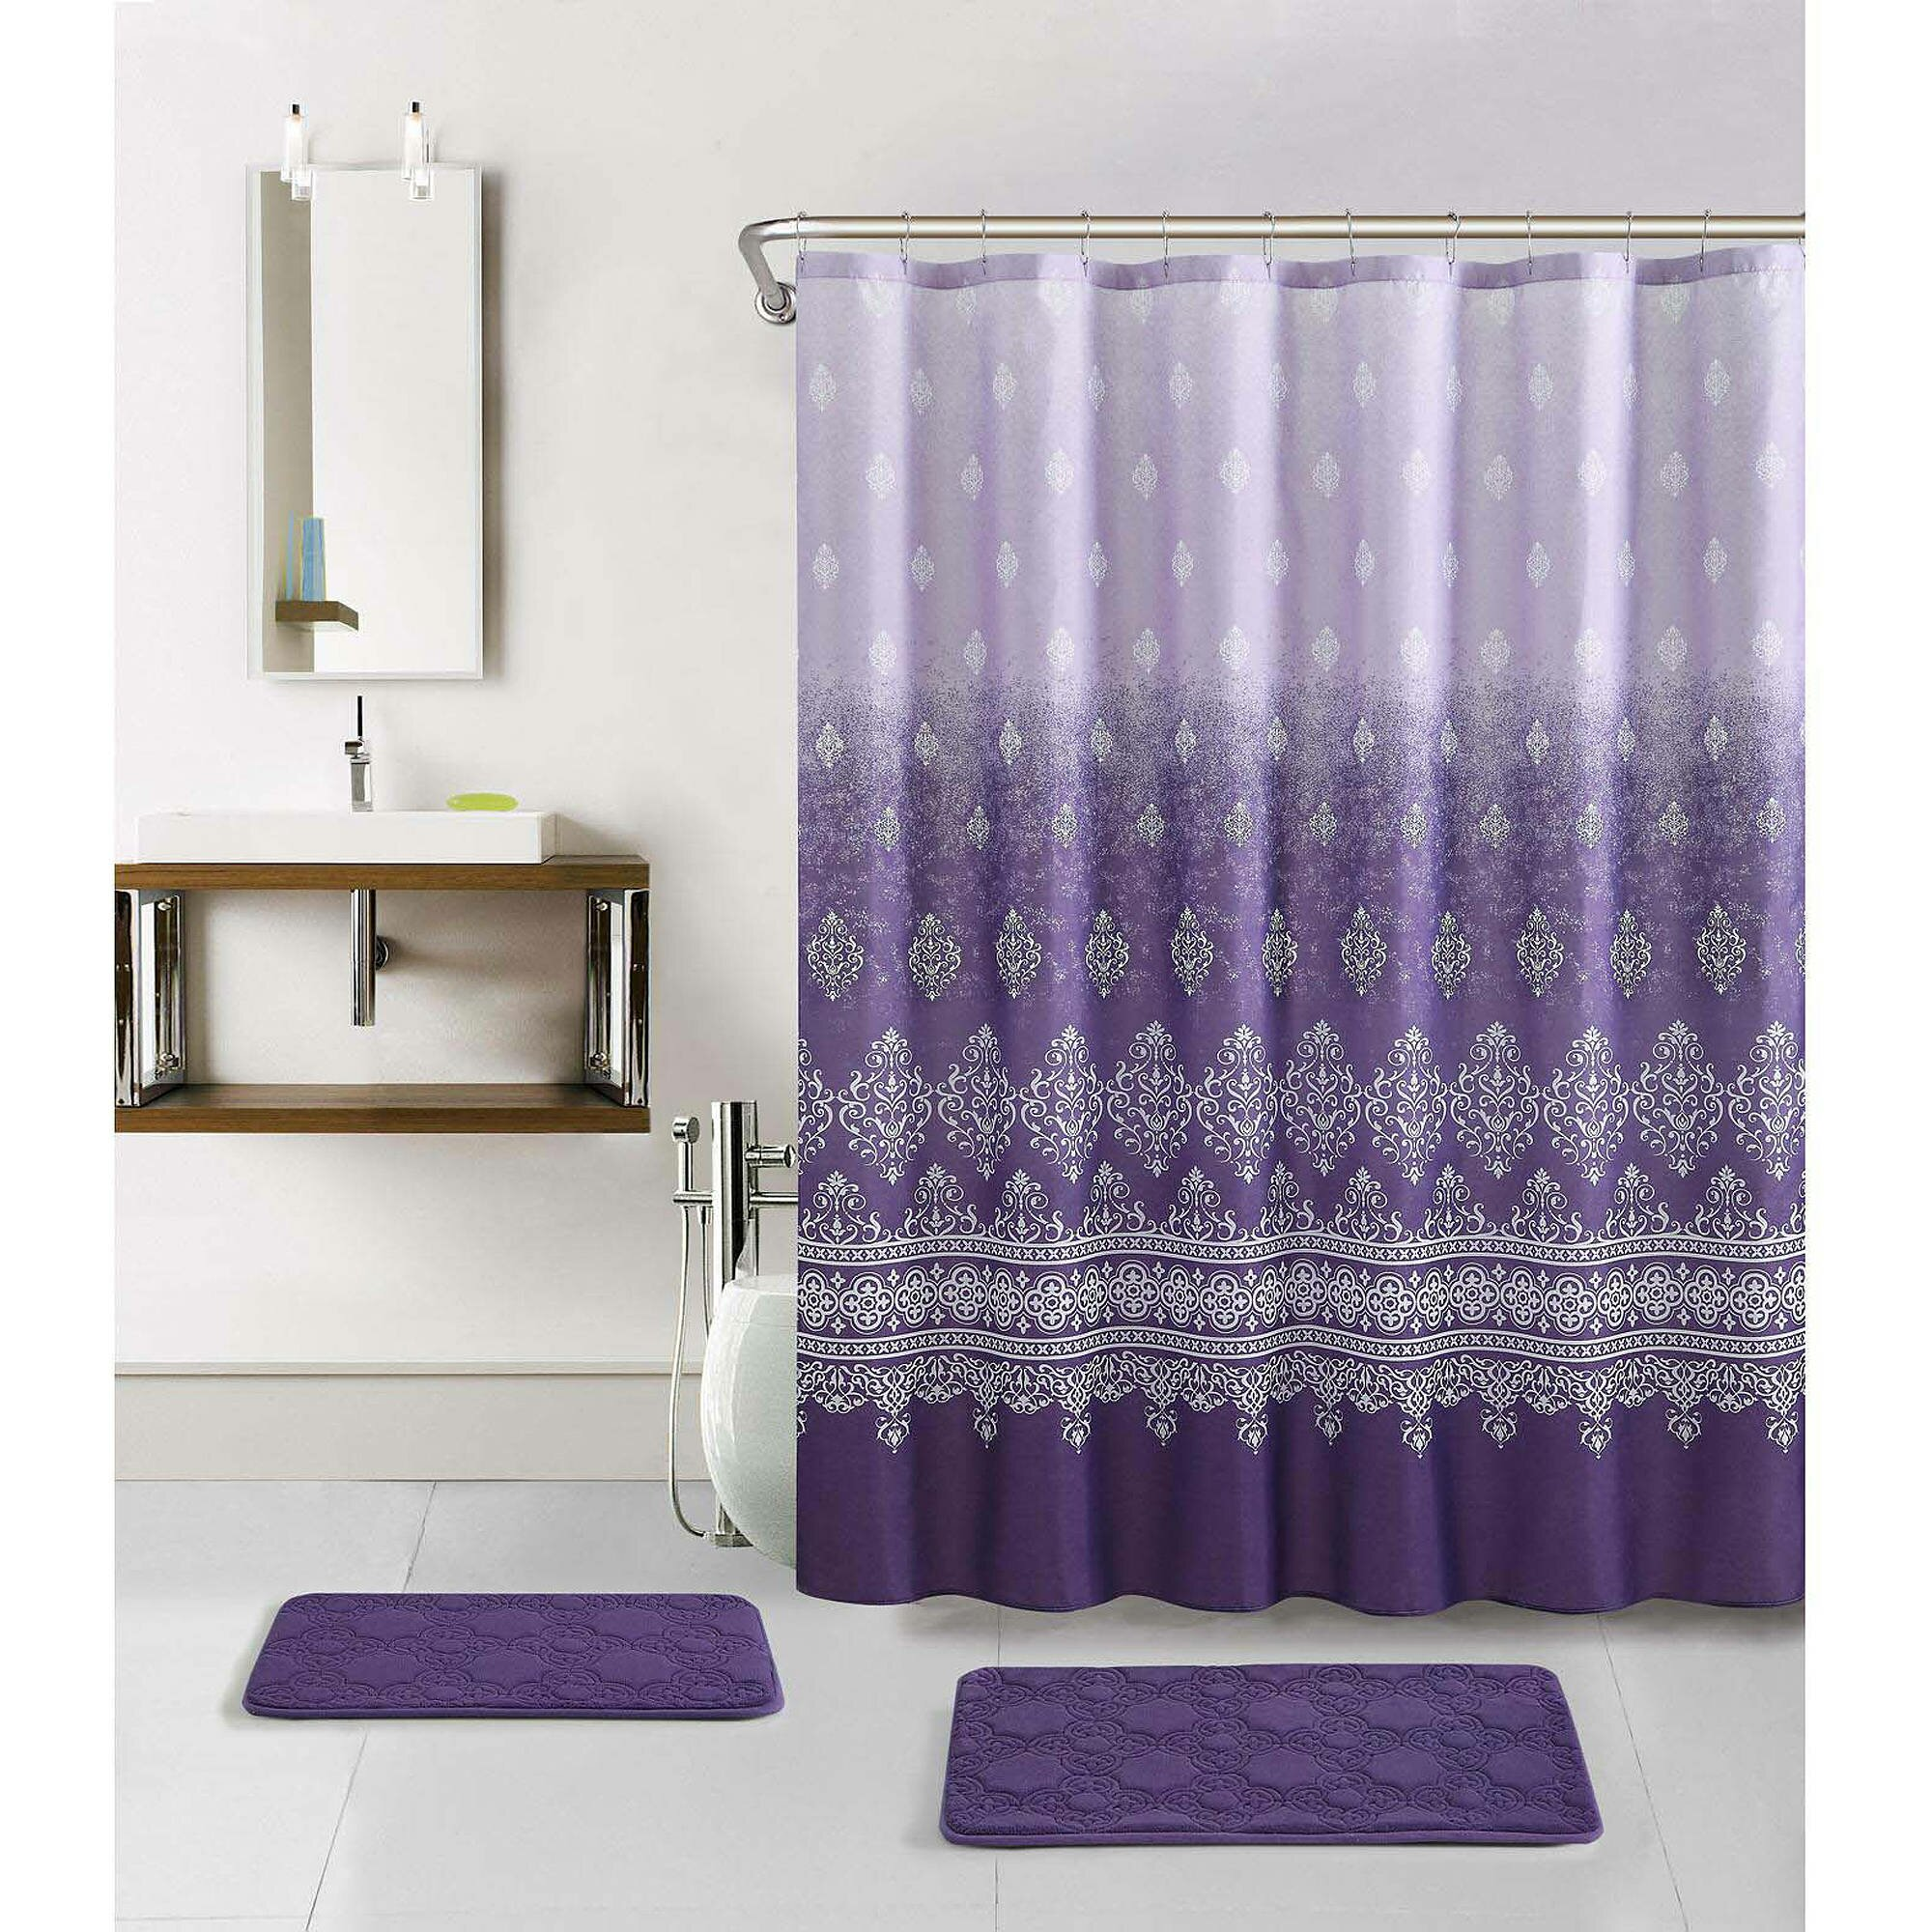 Plaid Shower Curtain Rustic Shower Curtains Plaid Shower